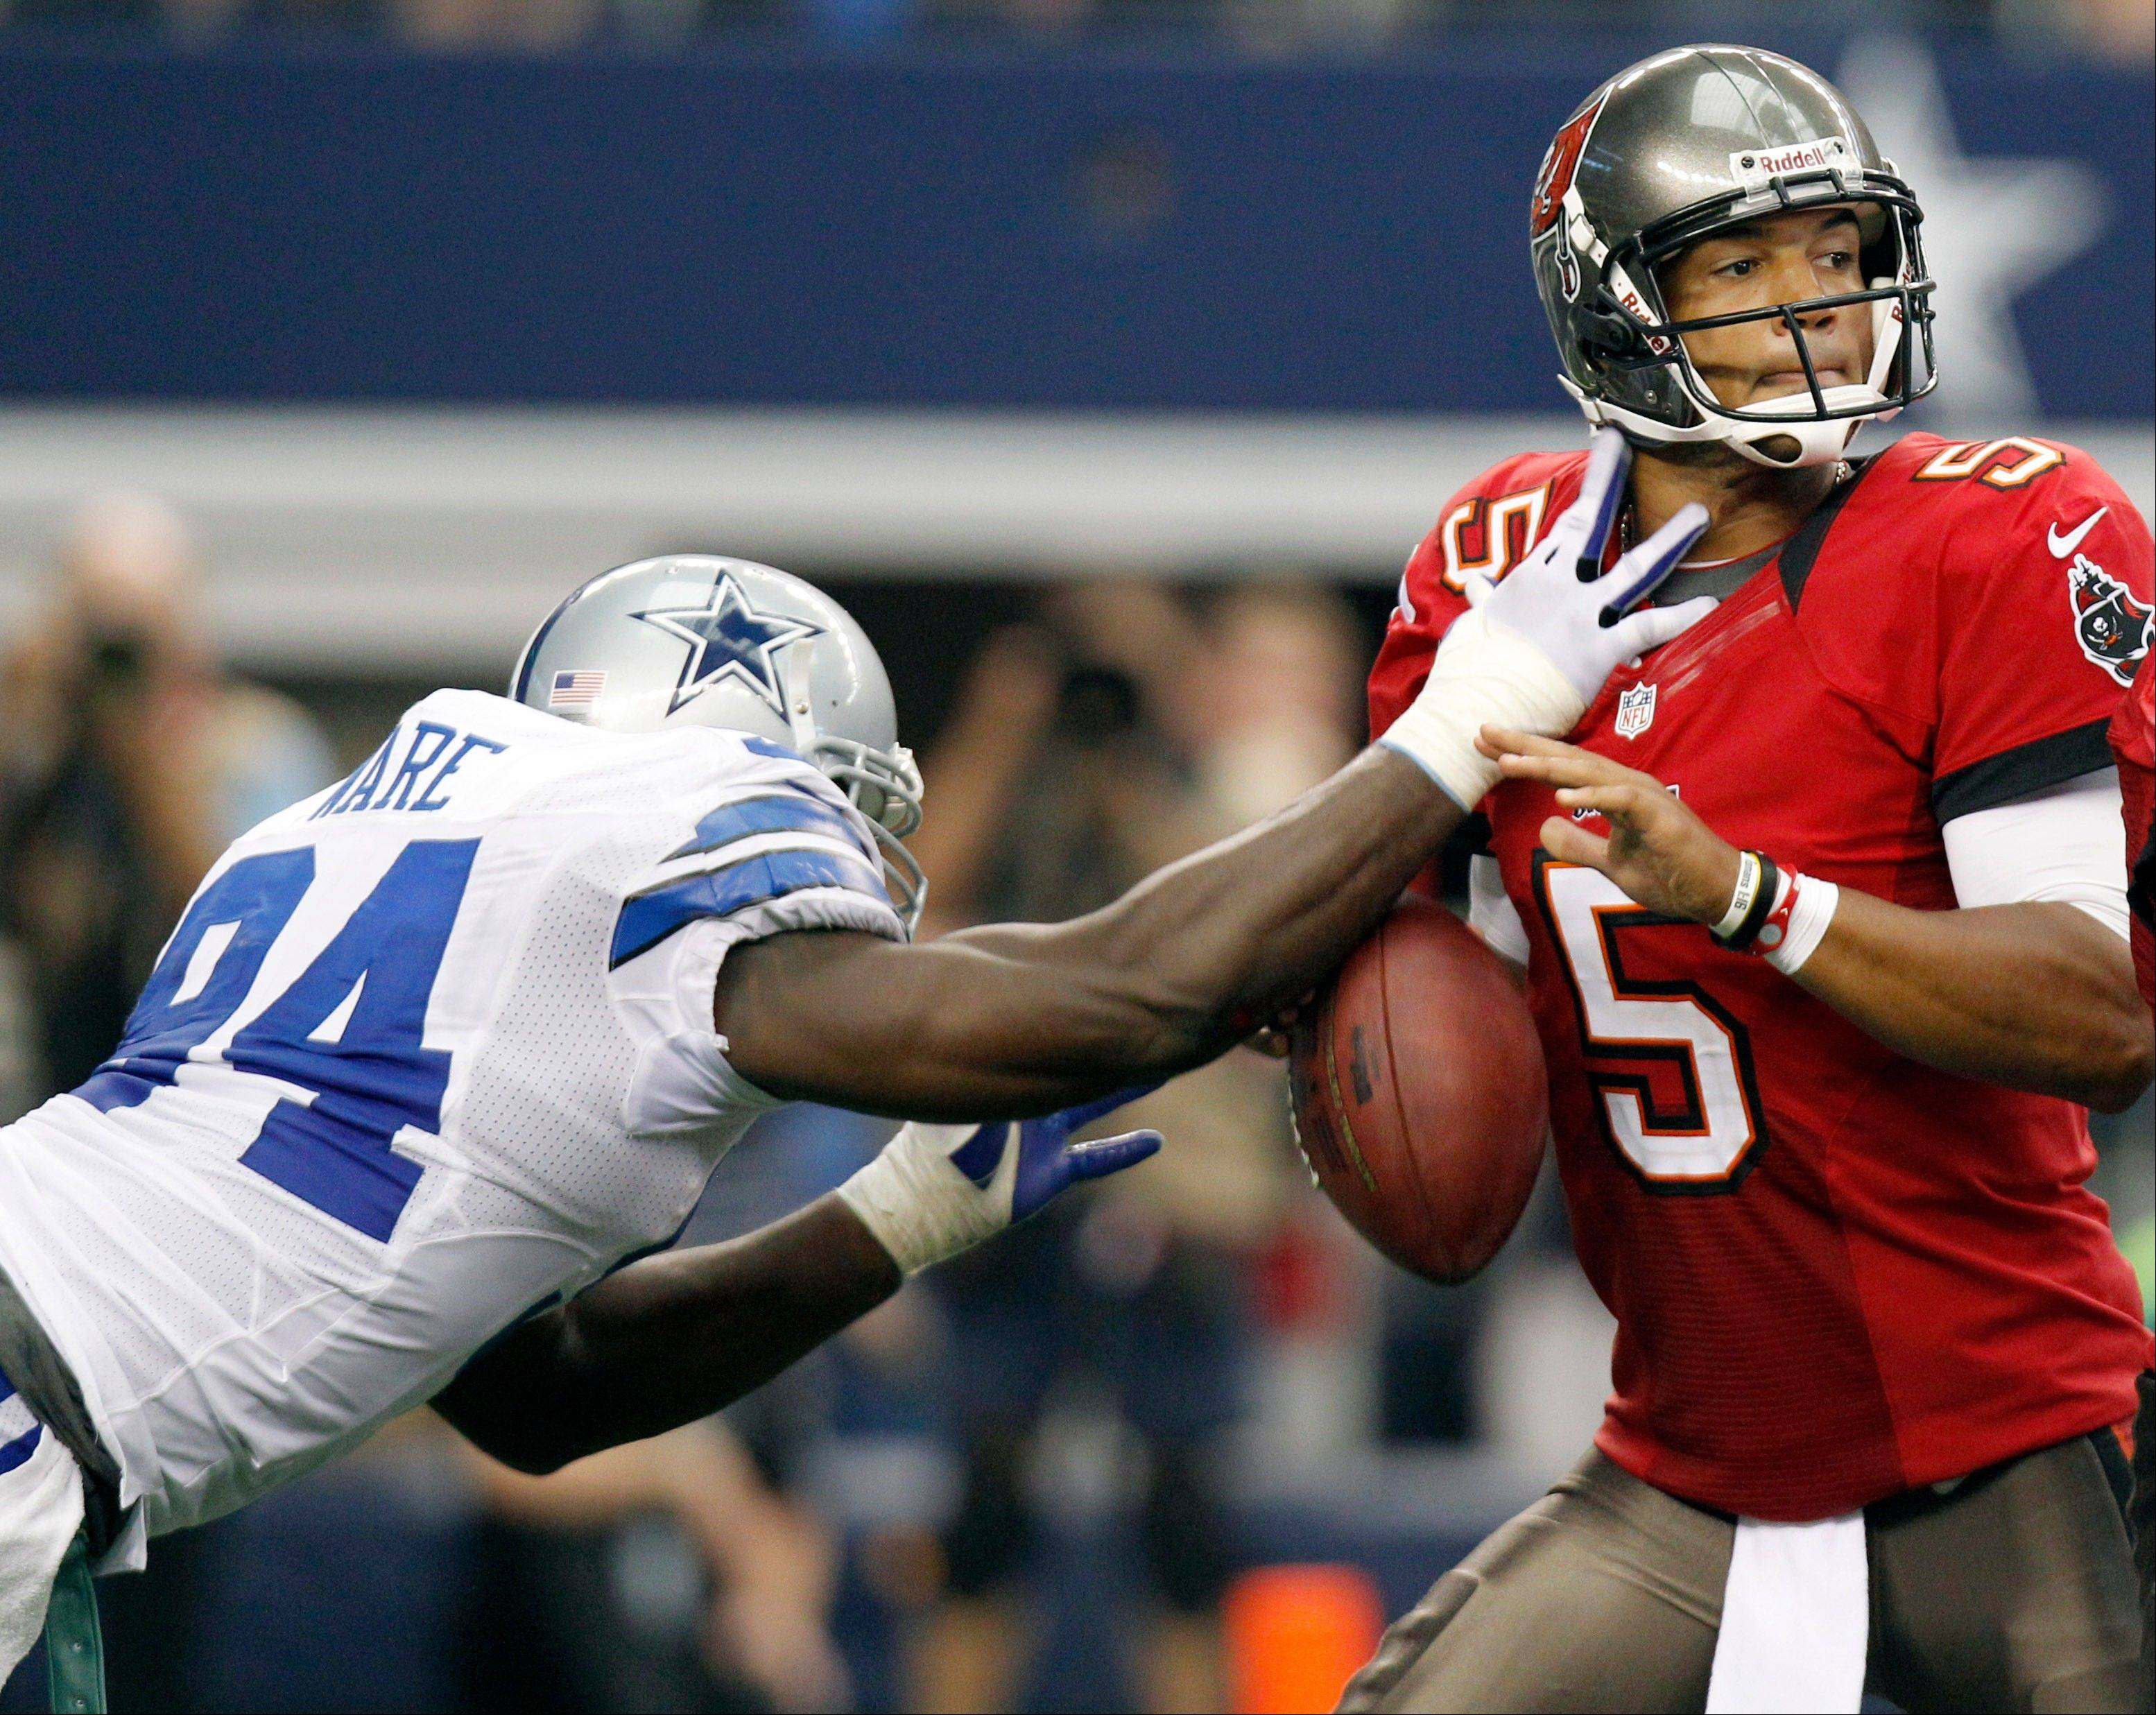 Dallas Cowboys outside linebacker DeMarcus Ware, here stripping the ball from Tampa Bay Buccaneers quarterback Josh Freeman, will be a big challenge for the Bears on Monday night.